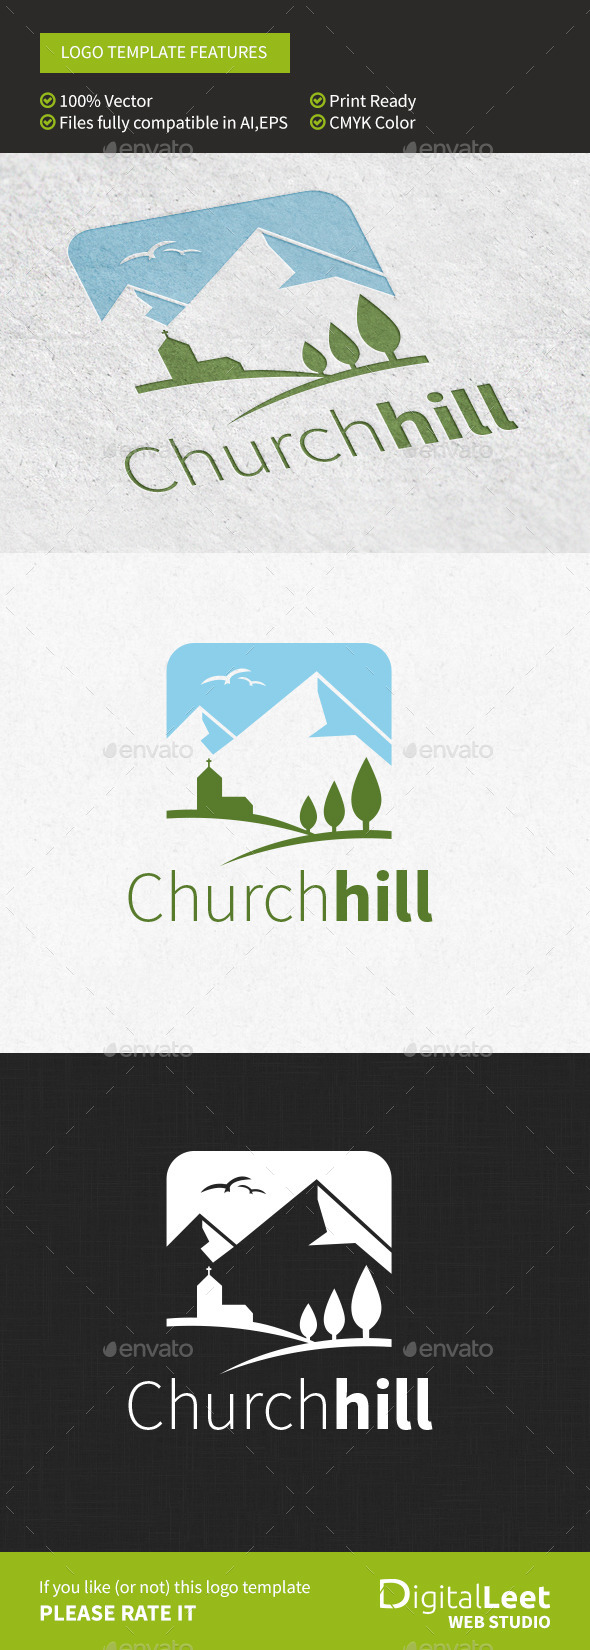 GraphicRiver Churchhill Logo Template 9576004